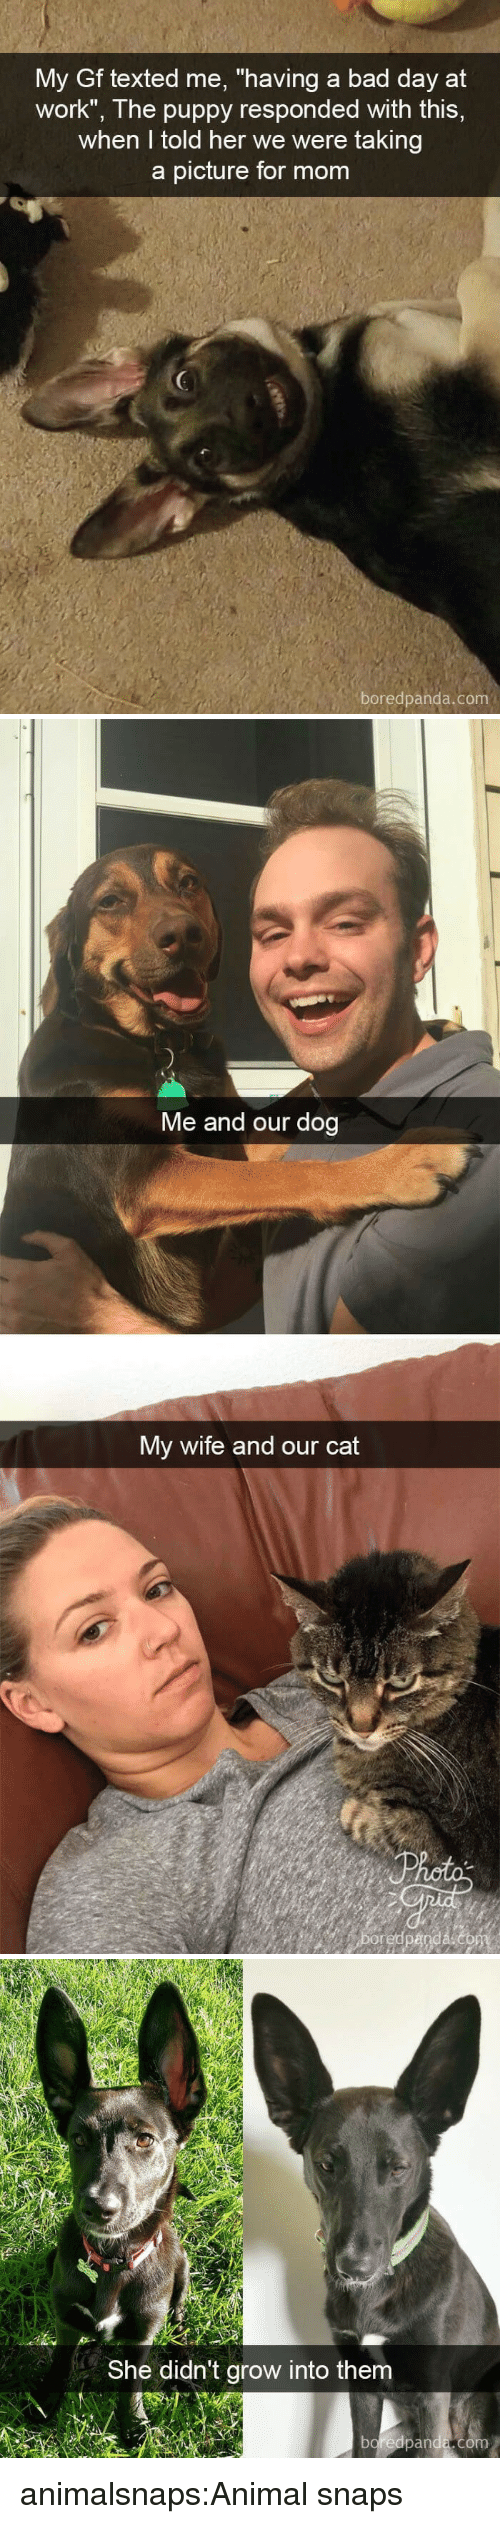 """Taking A Picture: My Gf texted me, """"having a bad day at  work"""", The puppy responded with this,  when I told her we were taking  a picture for mom  boredpanda.com   Me and our dog  My wife and our cat   She didn't grow into them  boreapanda,com animalsnaps:Animal snaps"""